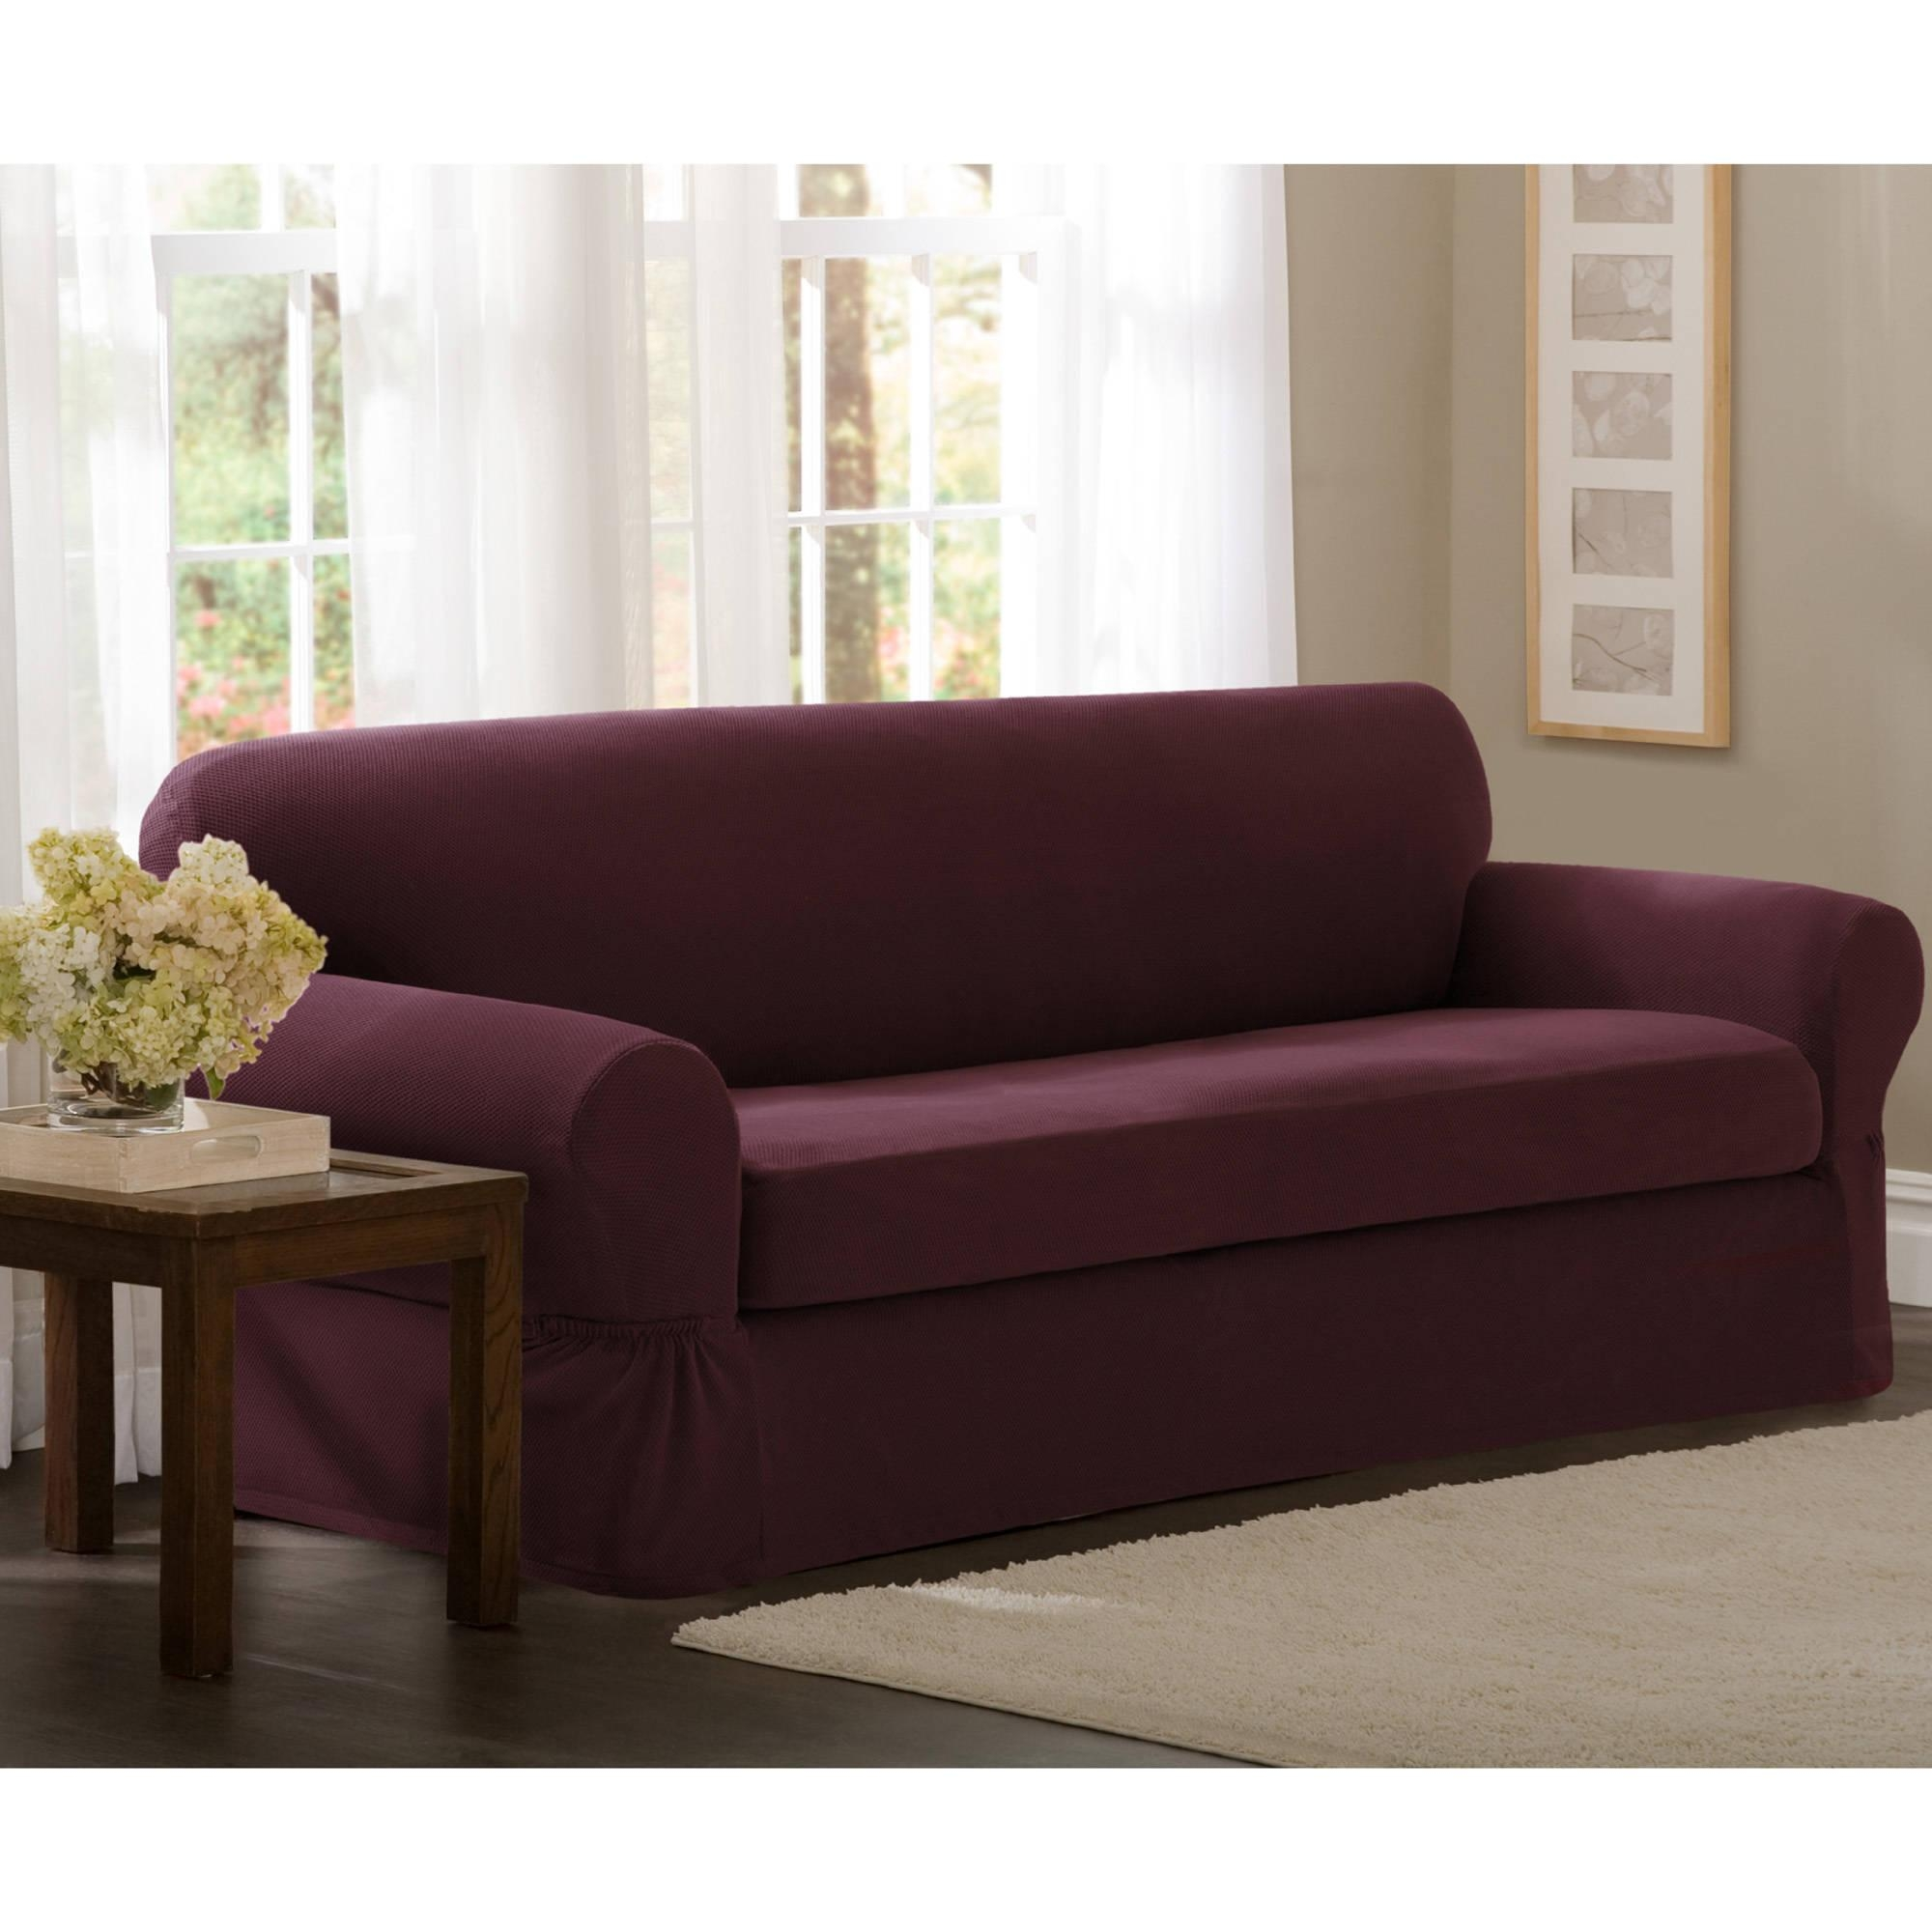 Maytex Stretch 2 Piece Sofa Slipcover – Walmart Inside 2 Piece Sofa Covers (Image 13 of 27)